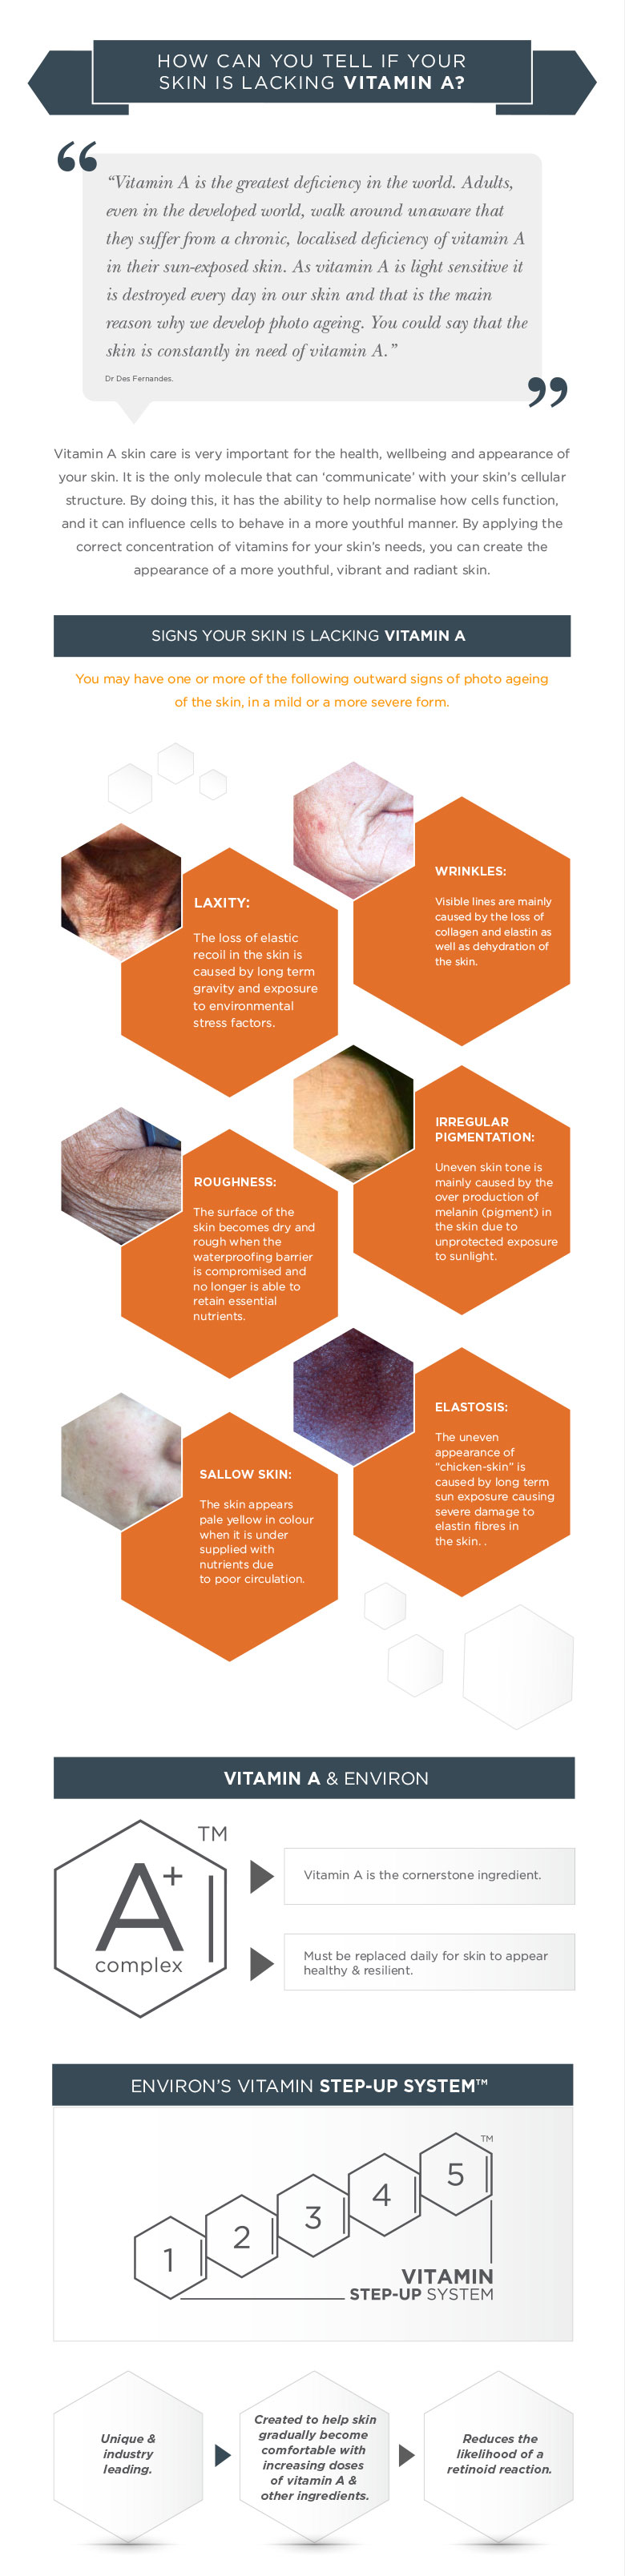 Vitamin-A Skin Care Infographic | Environ Skin Care